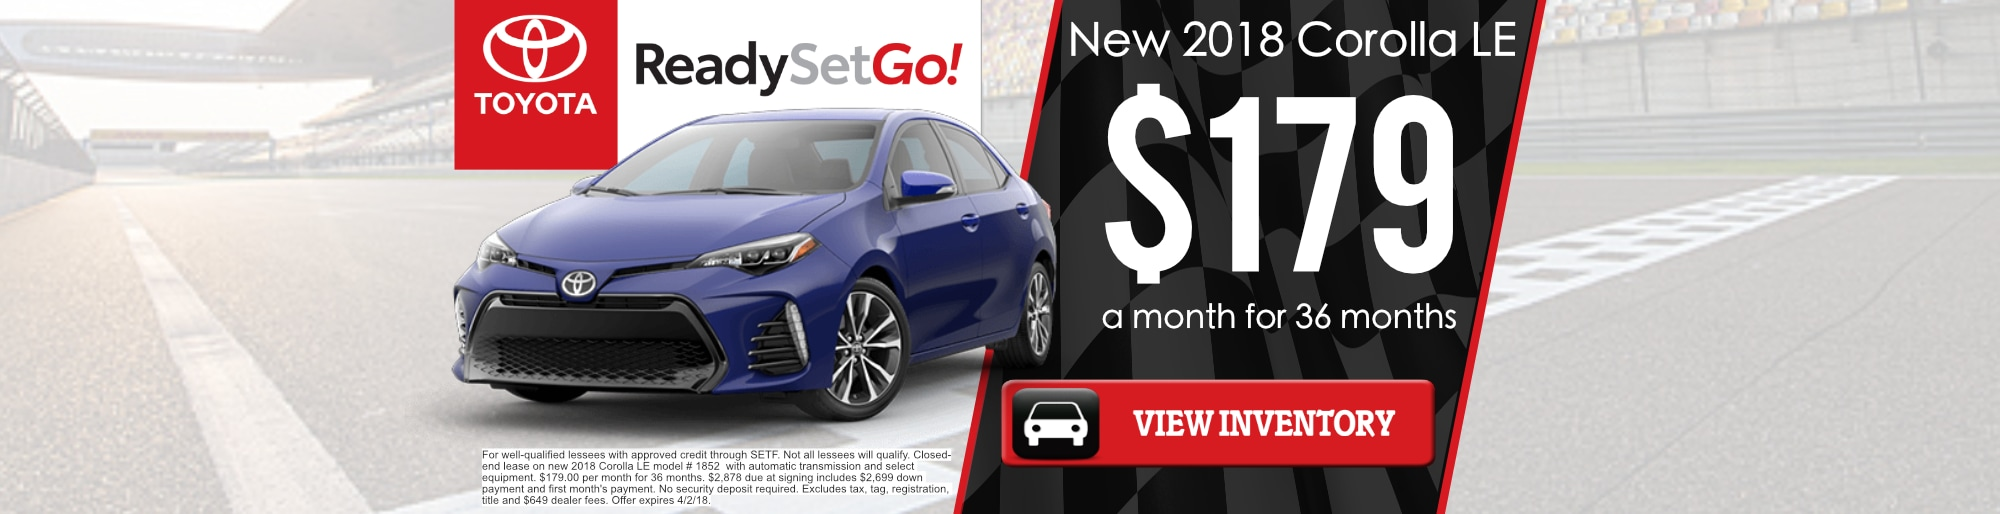 Durham New Toyota Used Car Dealership Serving Raleigh - Toyota scion dealership near me